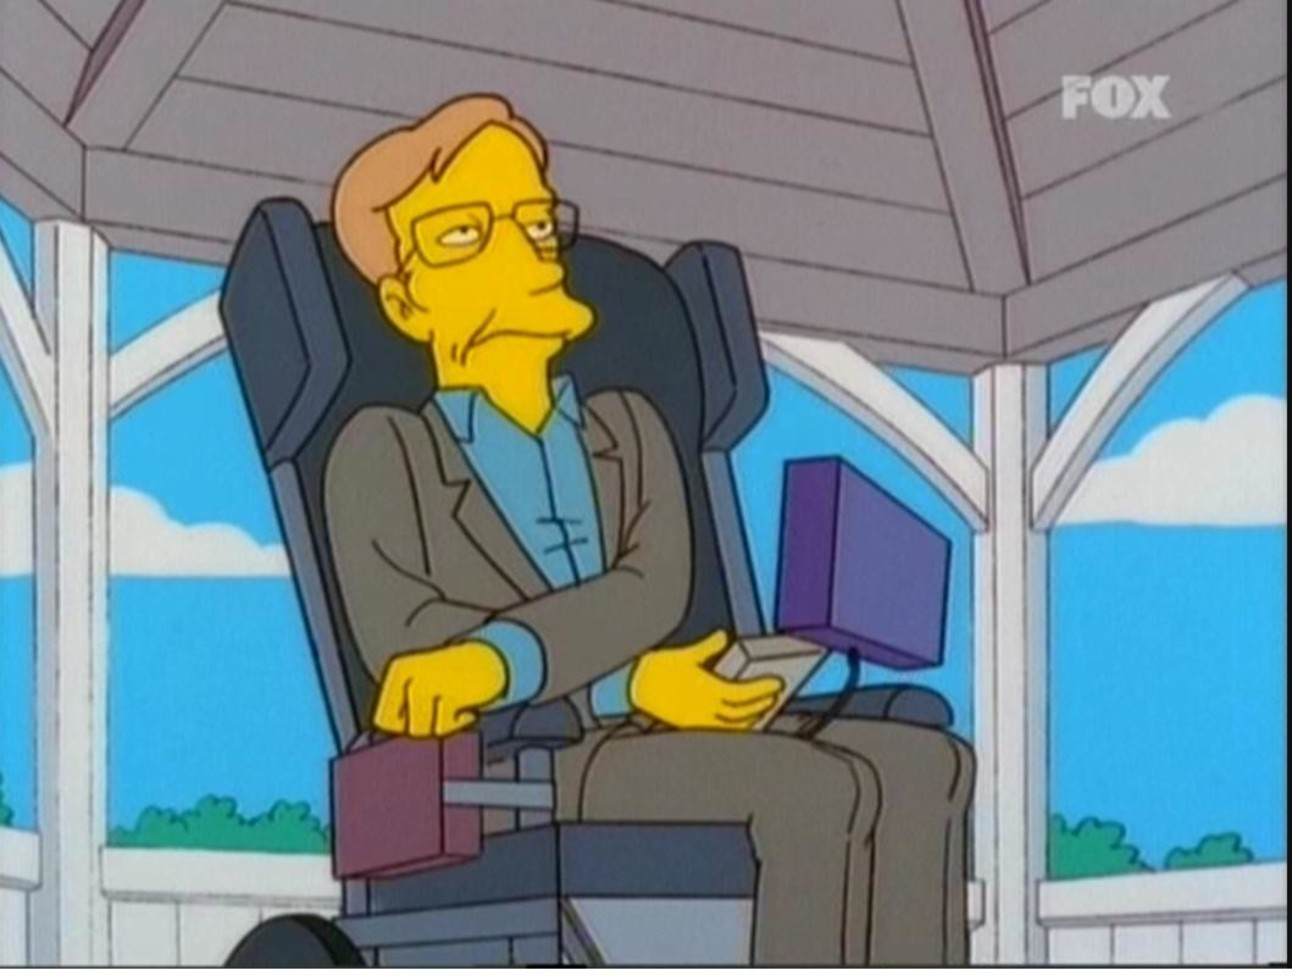 stephen_hawking_simpsons.jpg